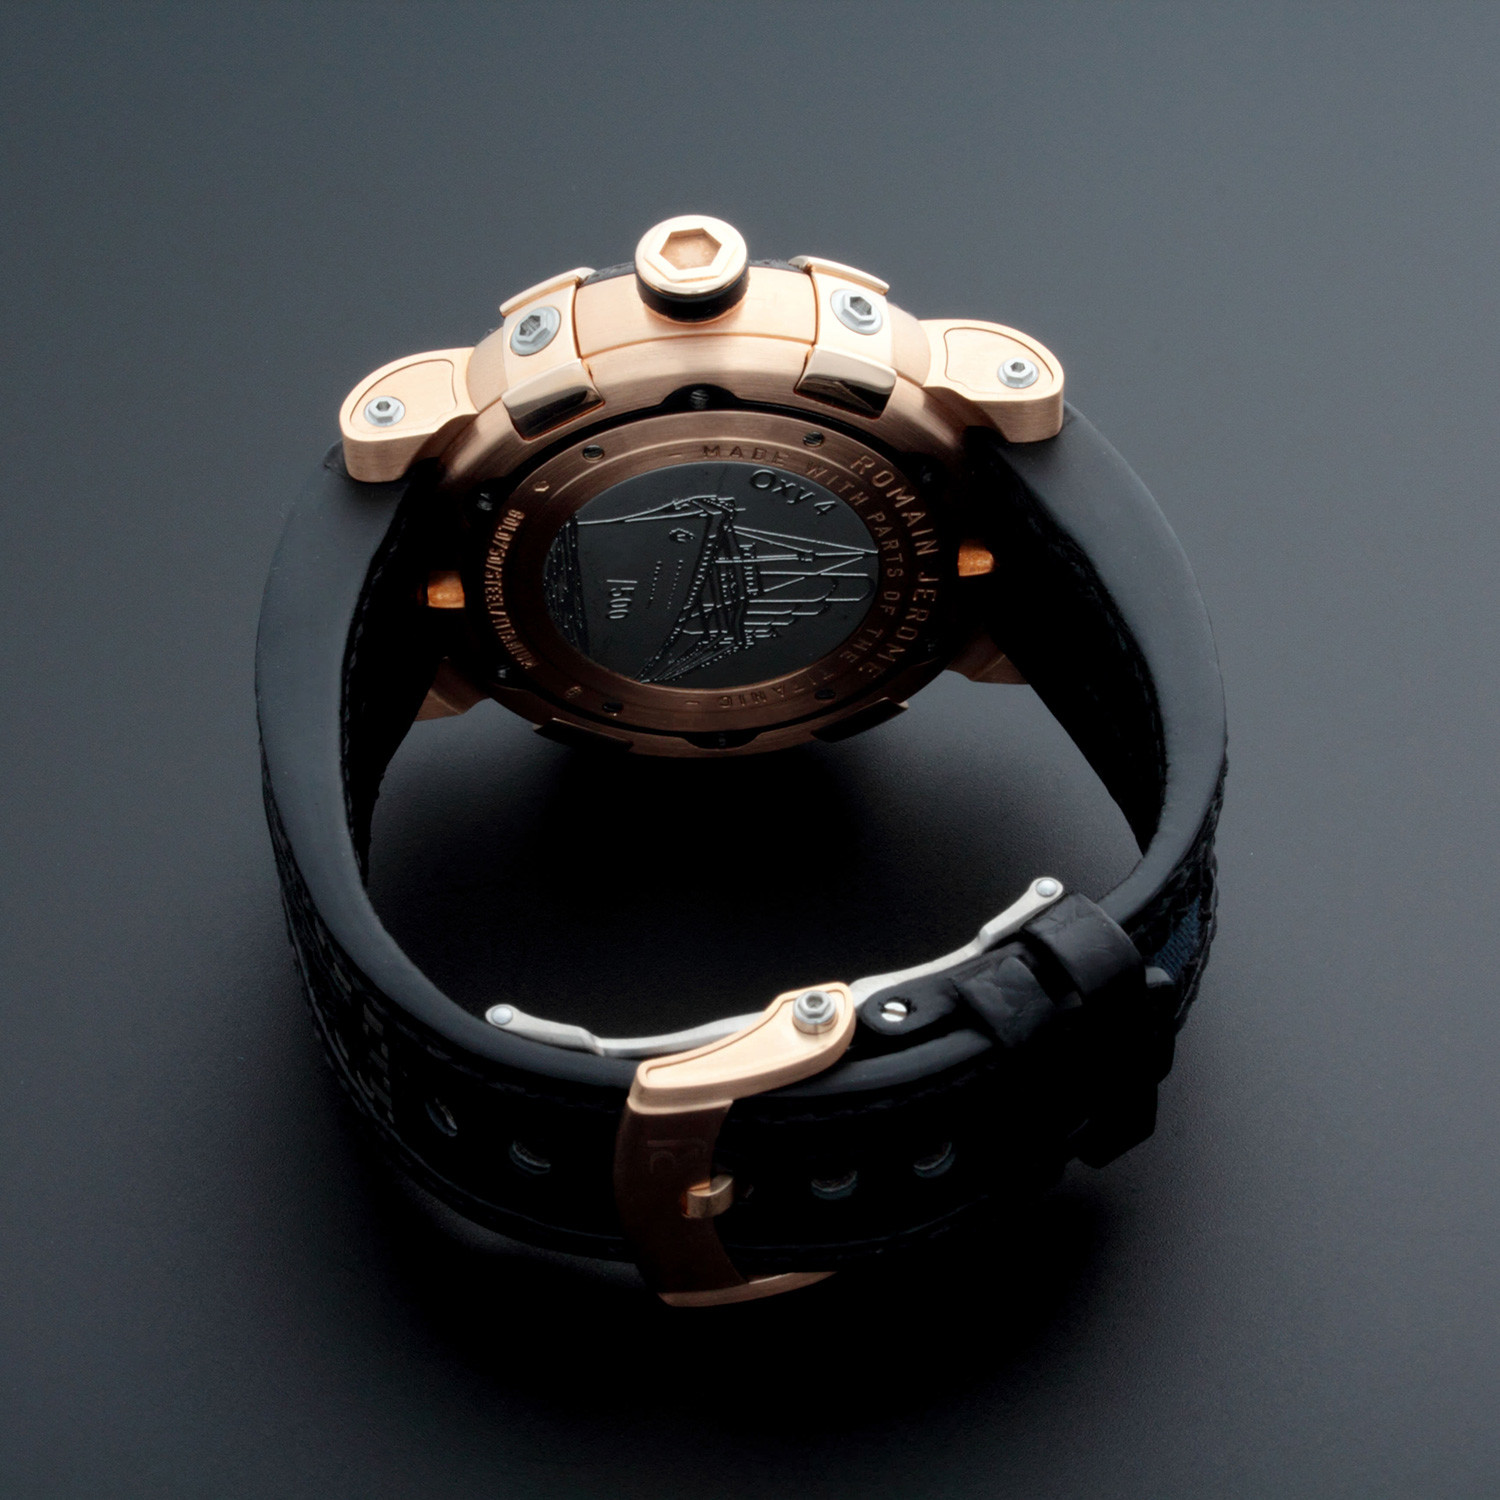 Romain jerome titanic automatic limited edition t for Jerome girard